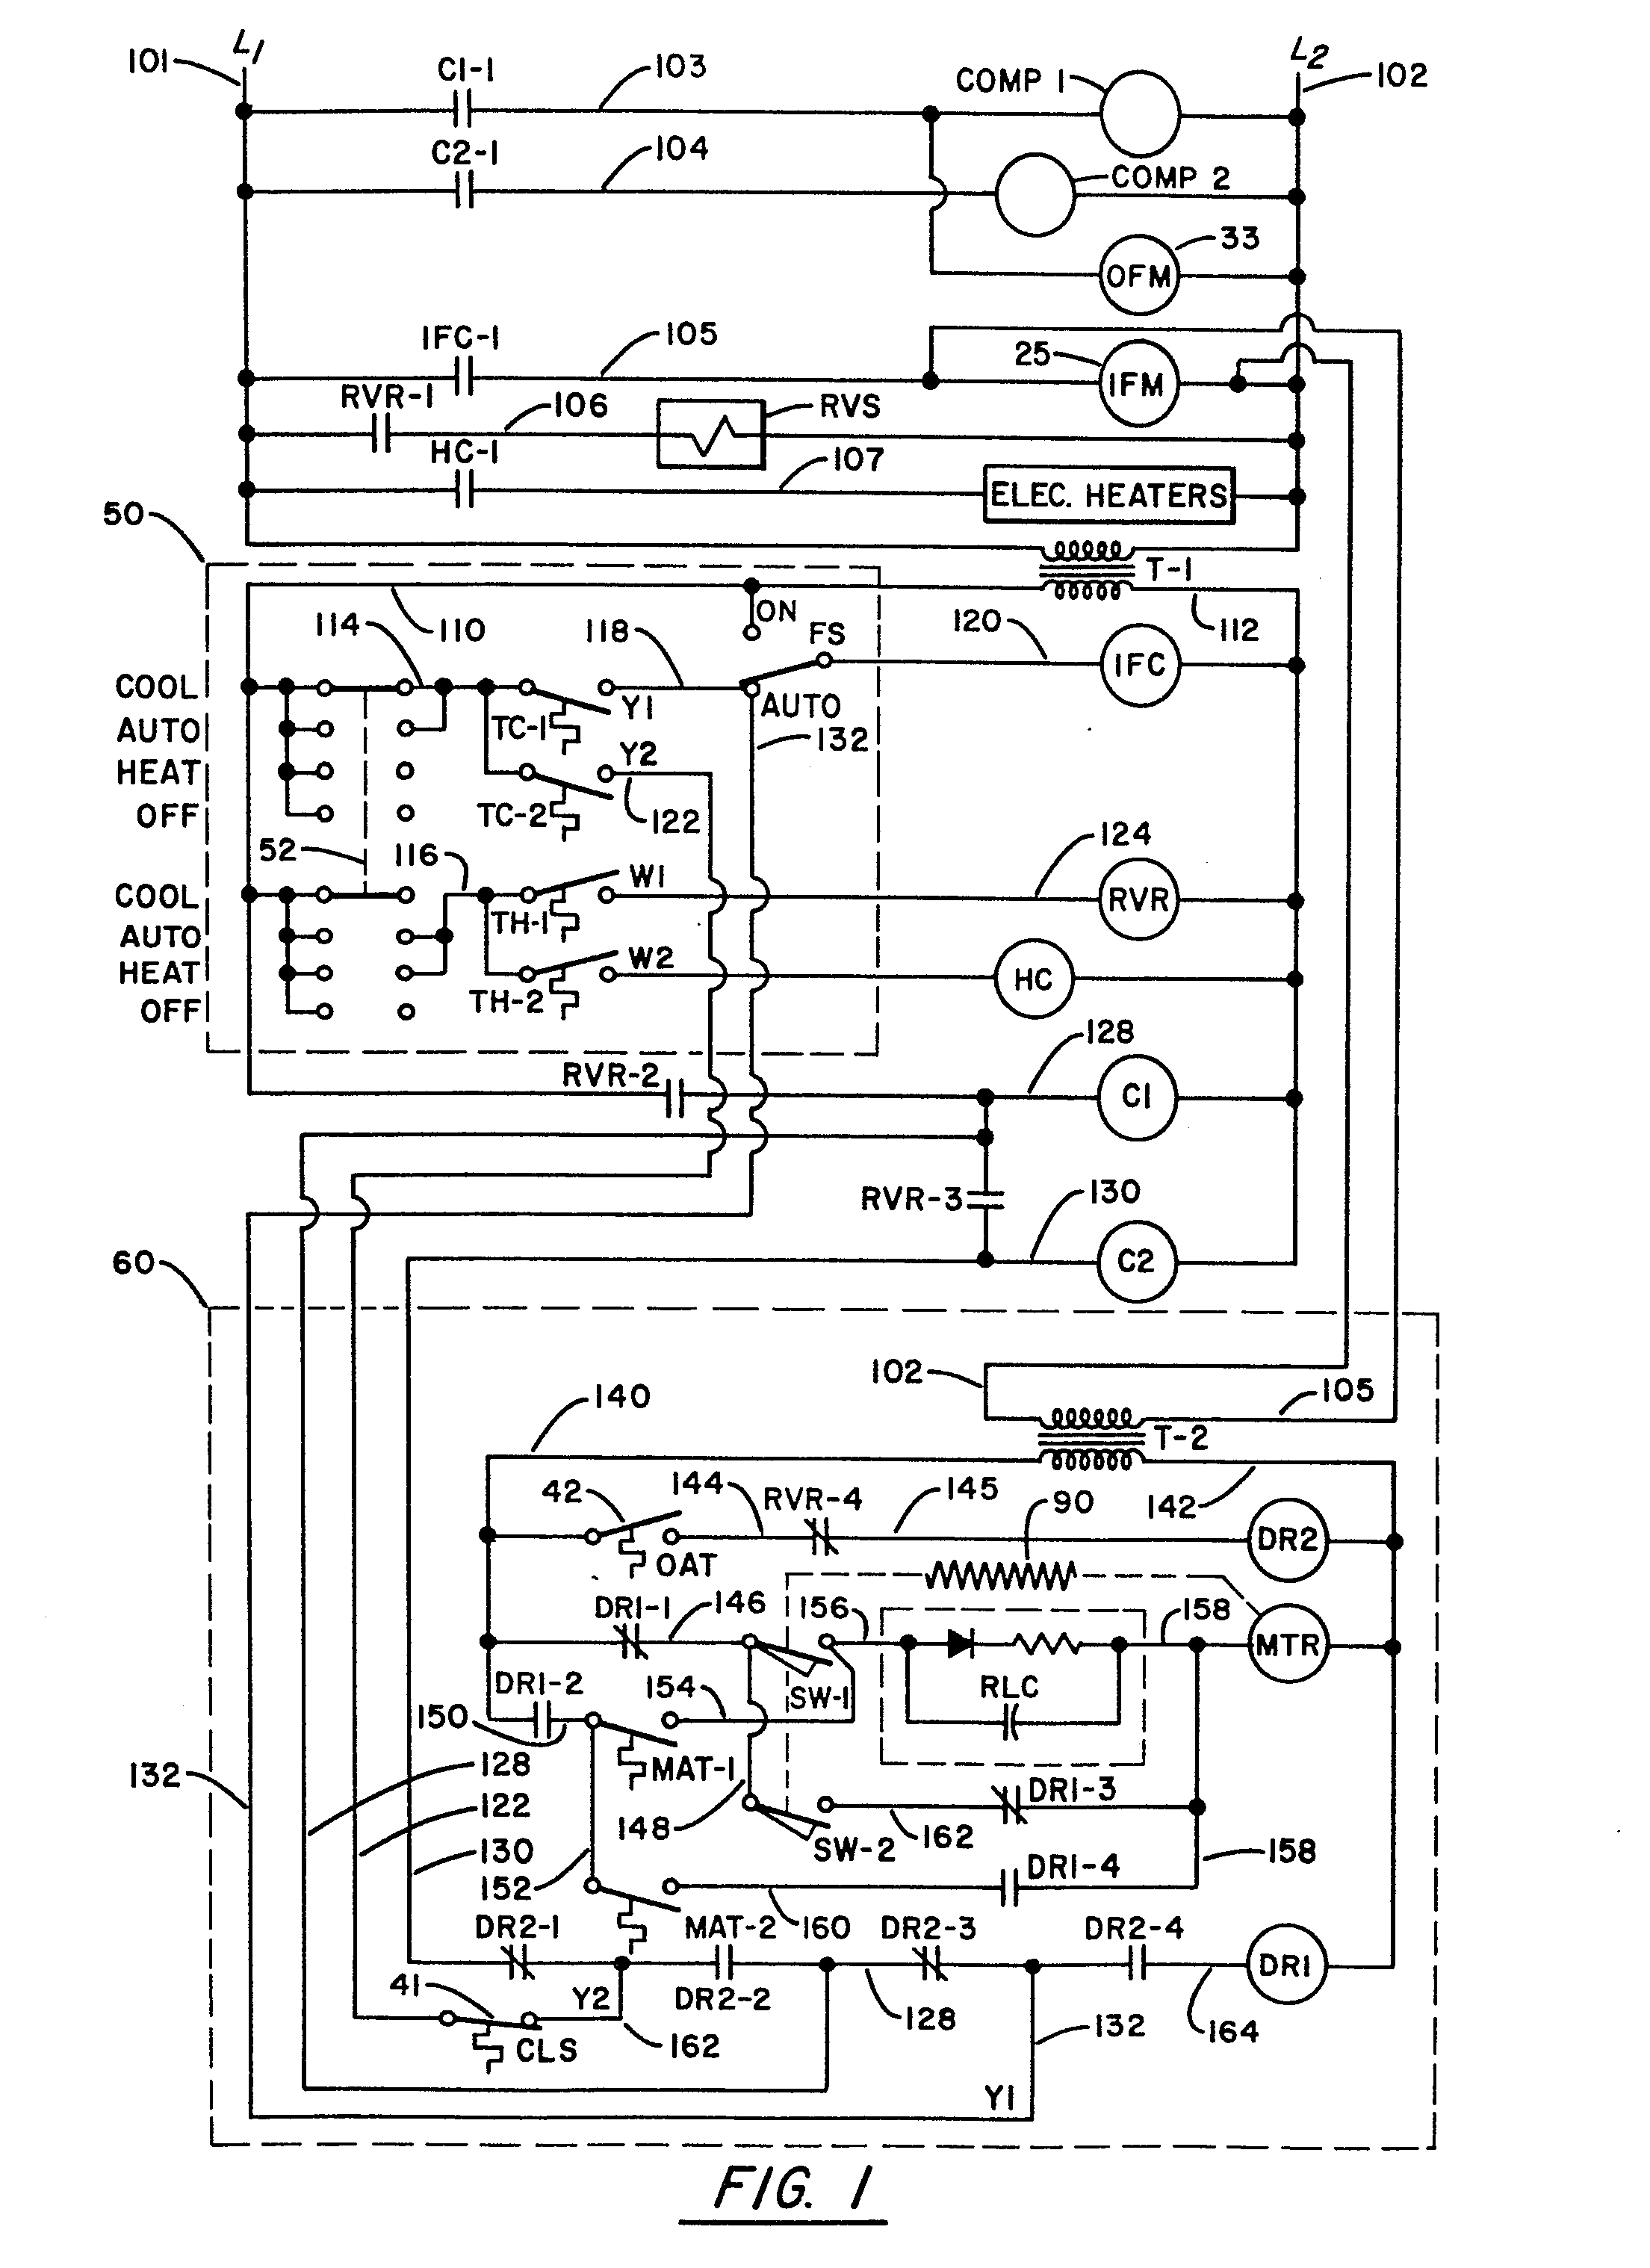 imgf0001 patent ep0080838a1 air conditioning economizer control method aaon rooftop units wiring diagram at cos-gaming.co